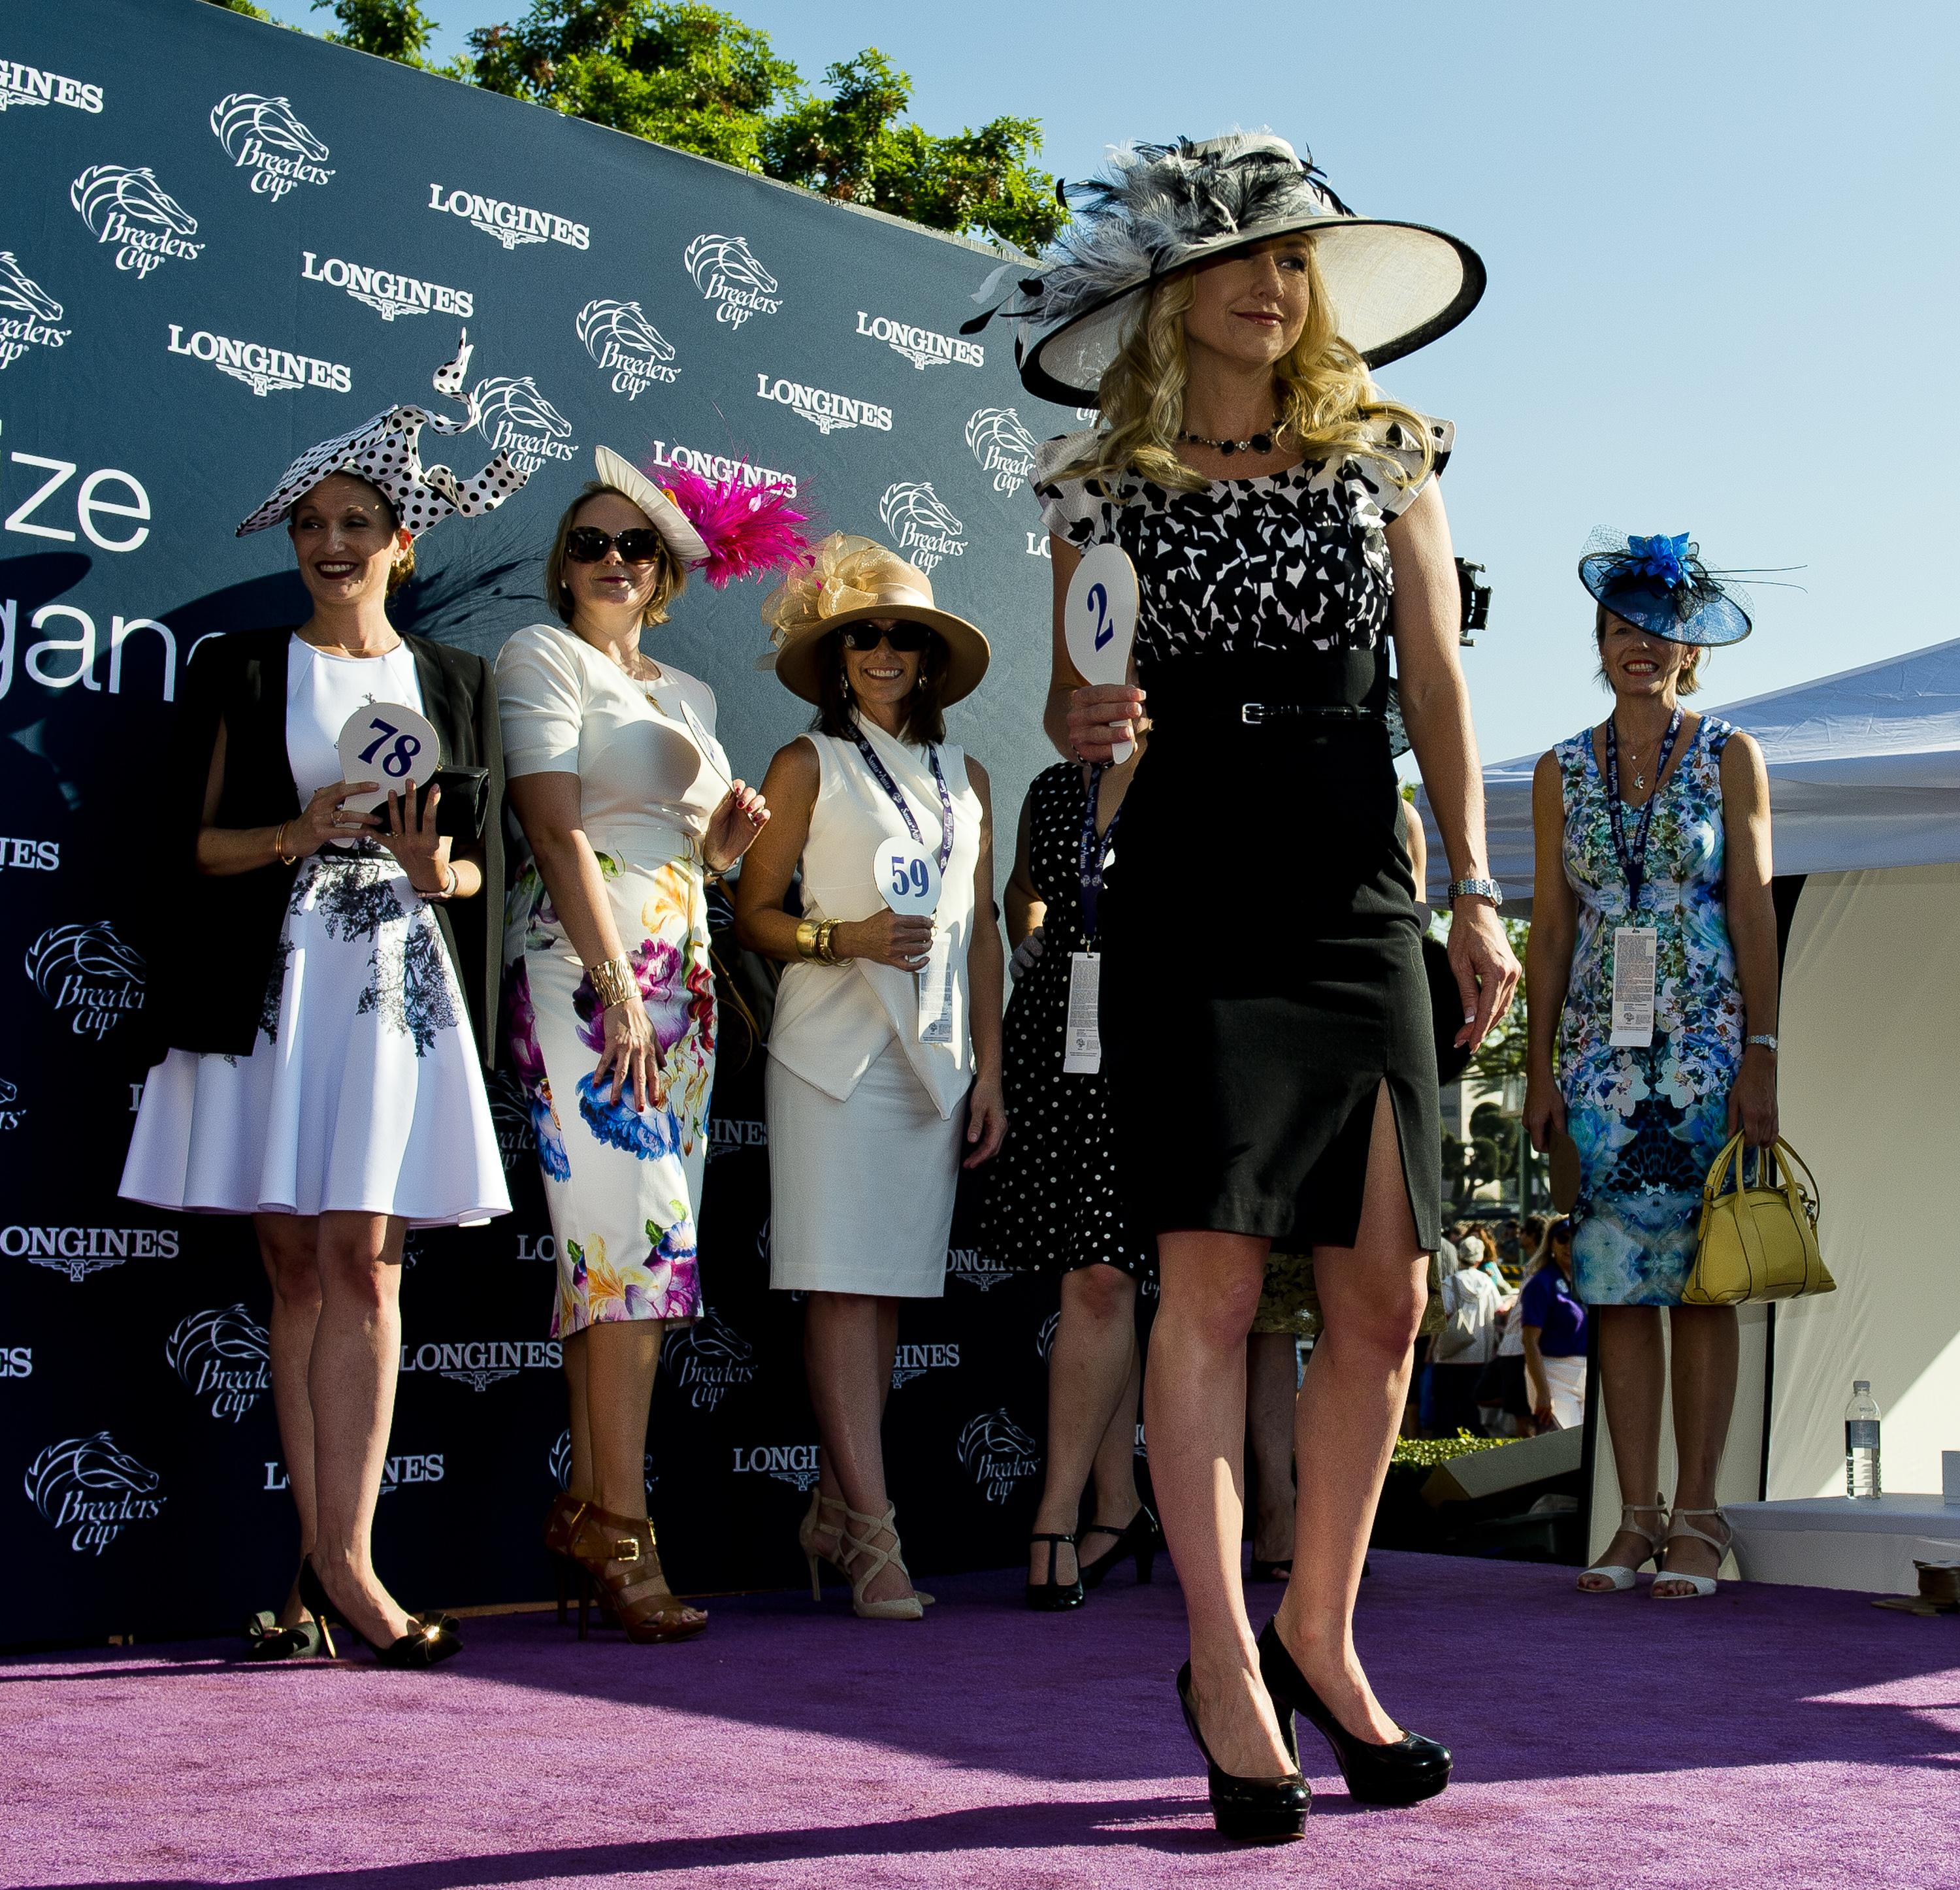 A fashion contest could be a fun way to spice up your Breeders' Cup party.